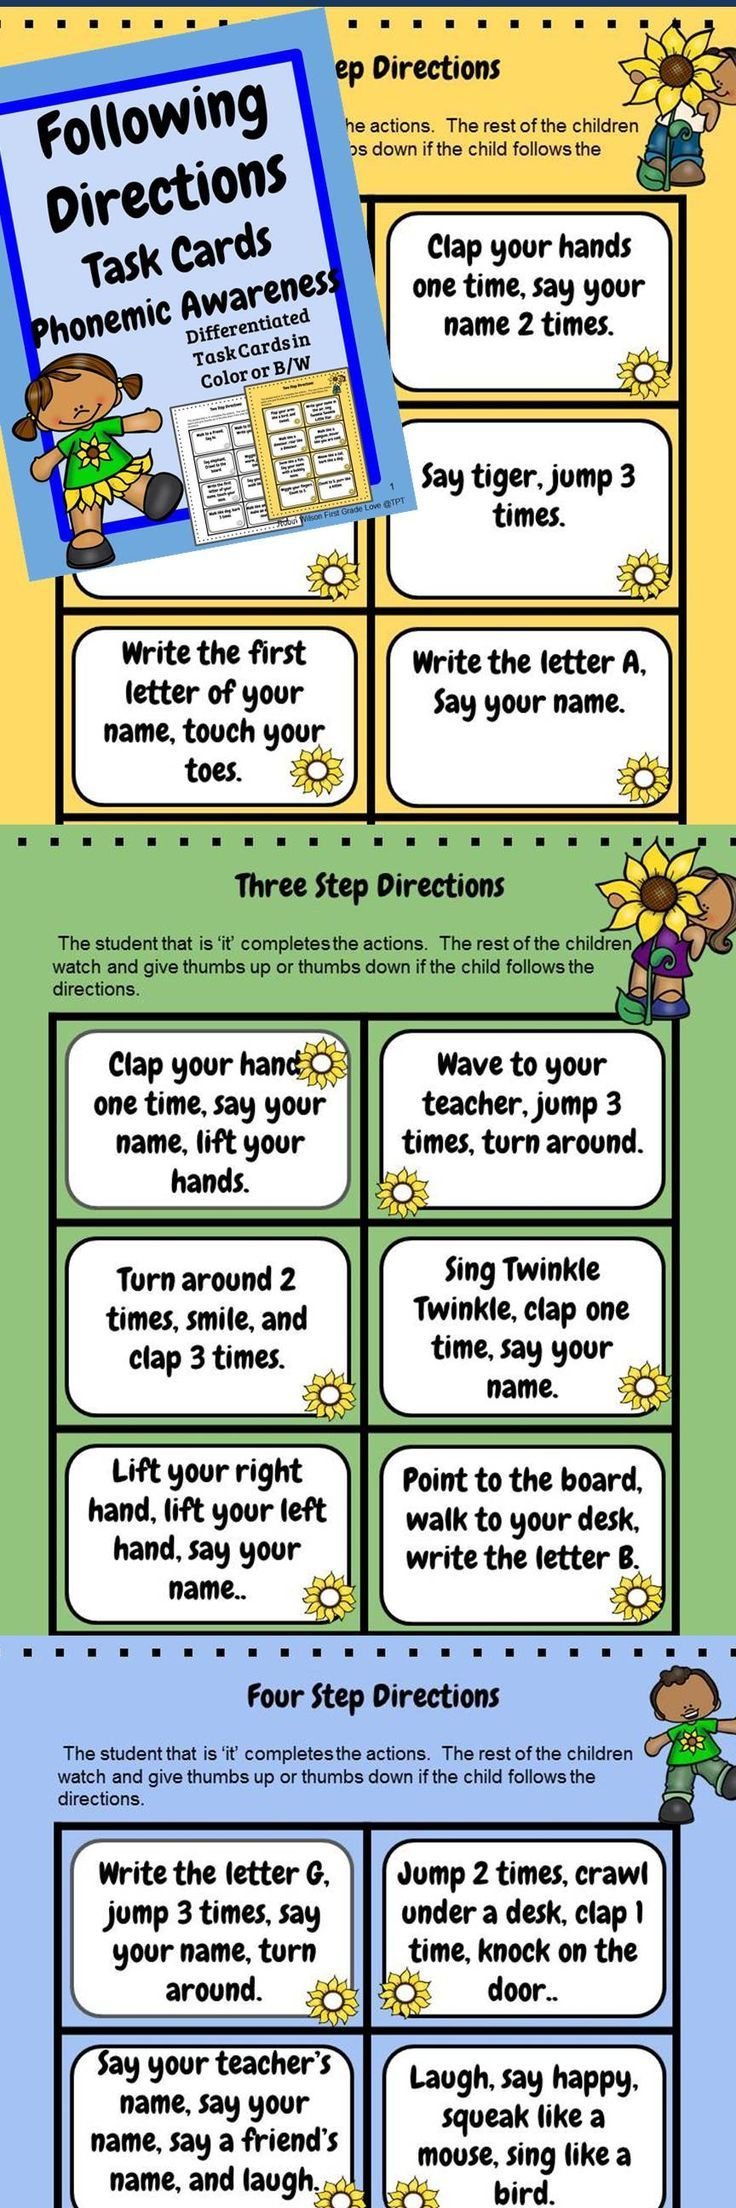 This product helps children perform fun actions that are in steps to develop listening so important for following verbal directions, which is essential later in phonemic awareness. There are 54 task cards differentiated by how many steps. Consider putting your students in small groups or partners to give directions to one another.